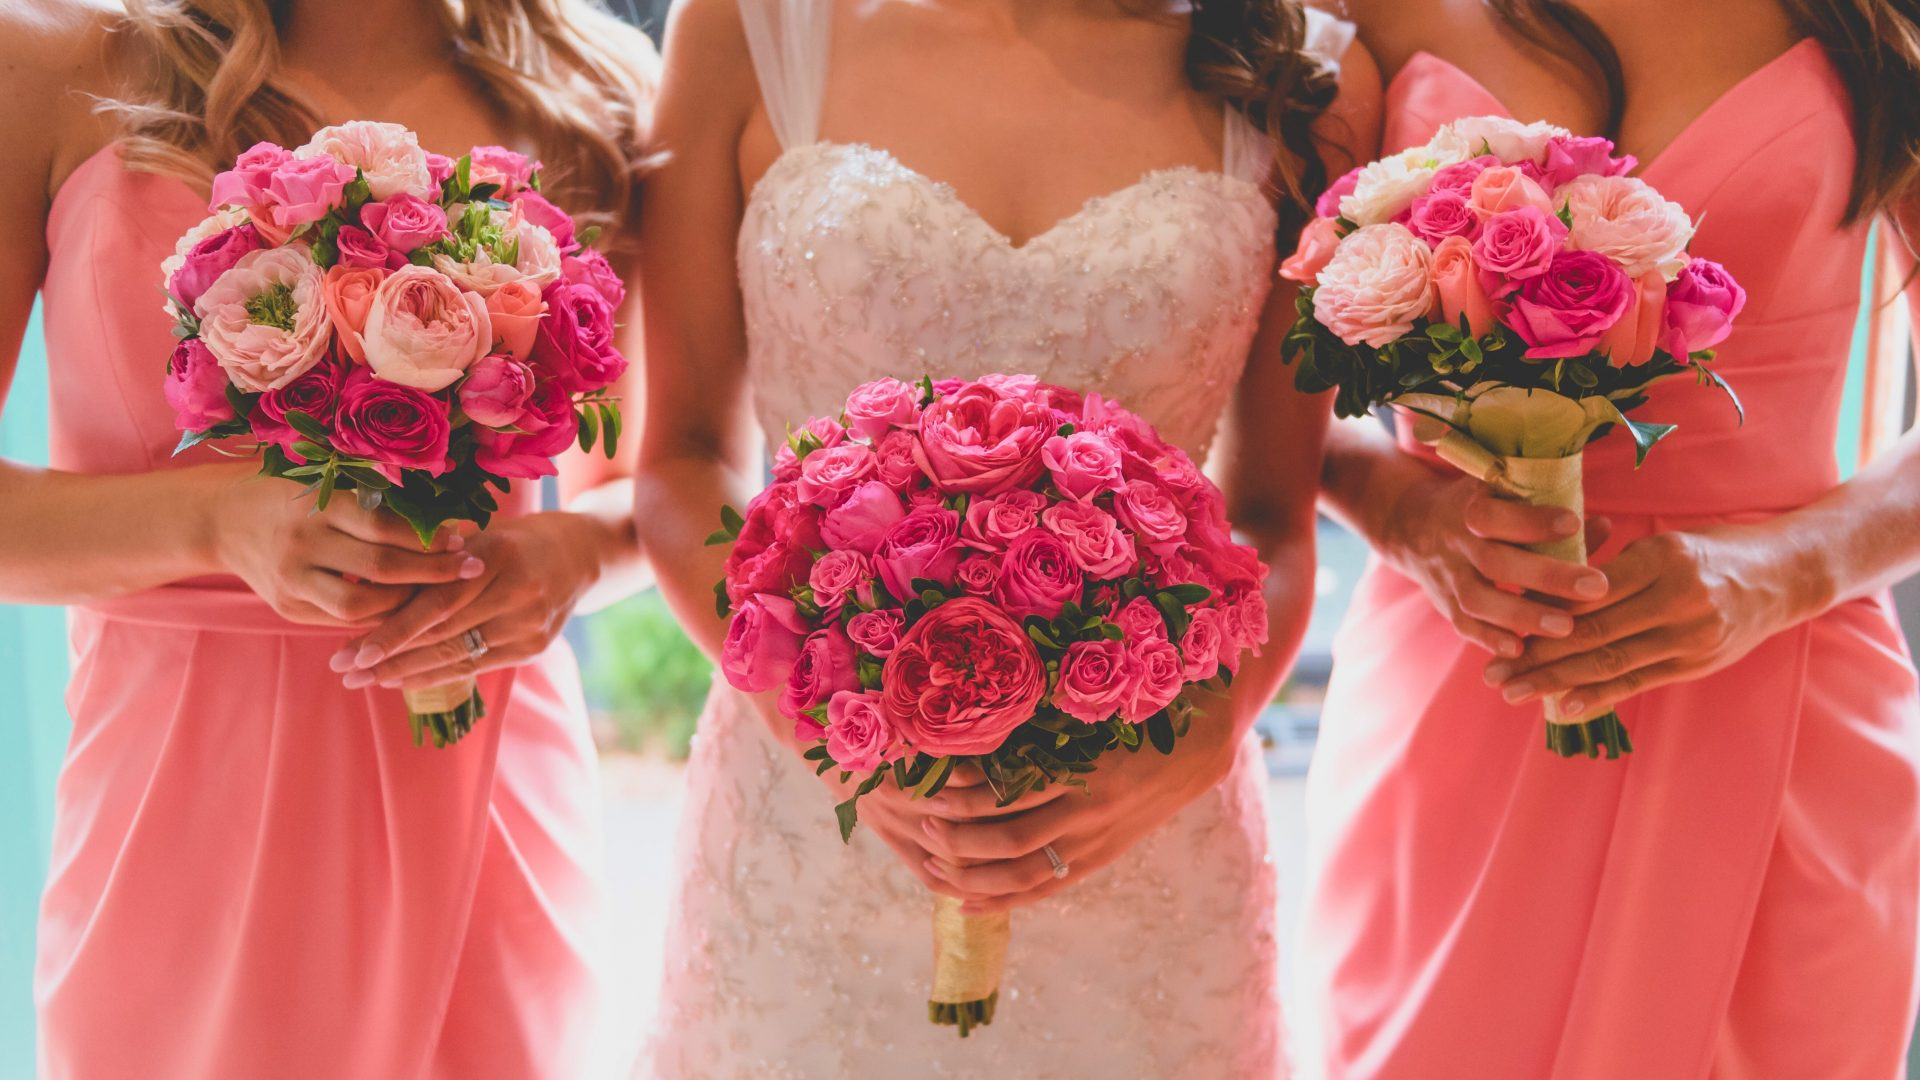 bride-bridesmaid-flower-bouquets